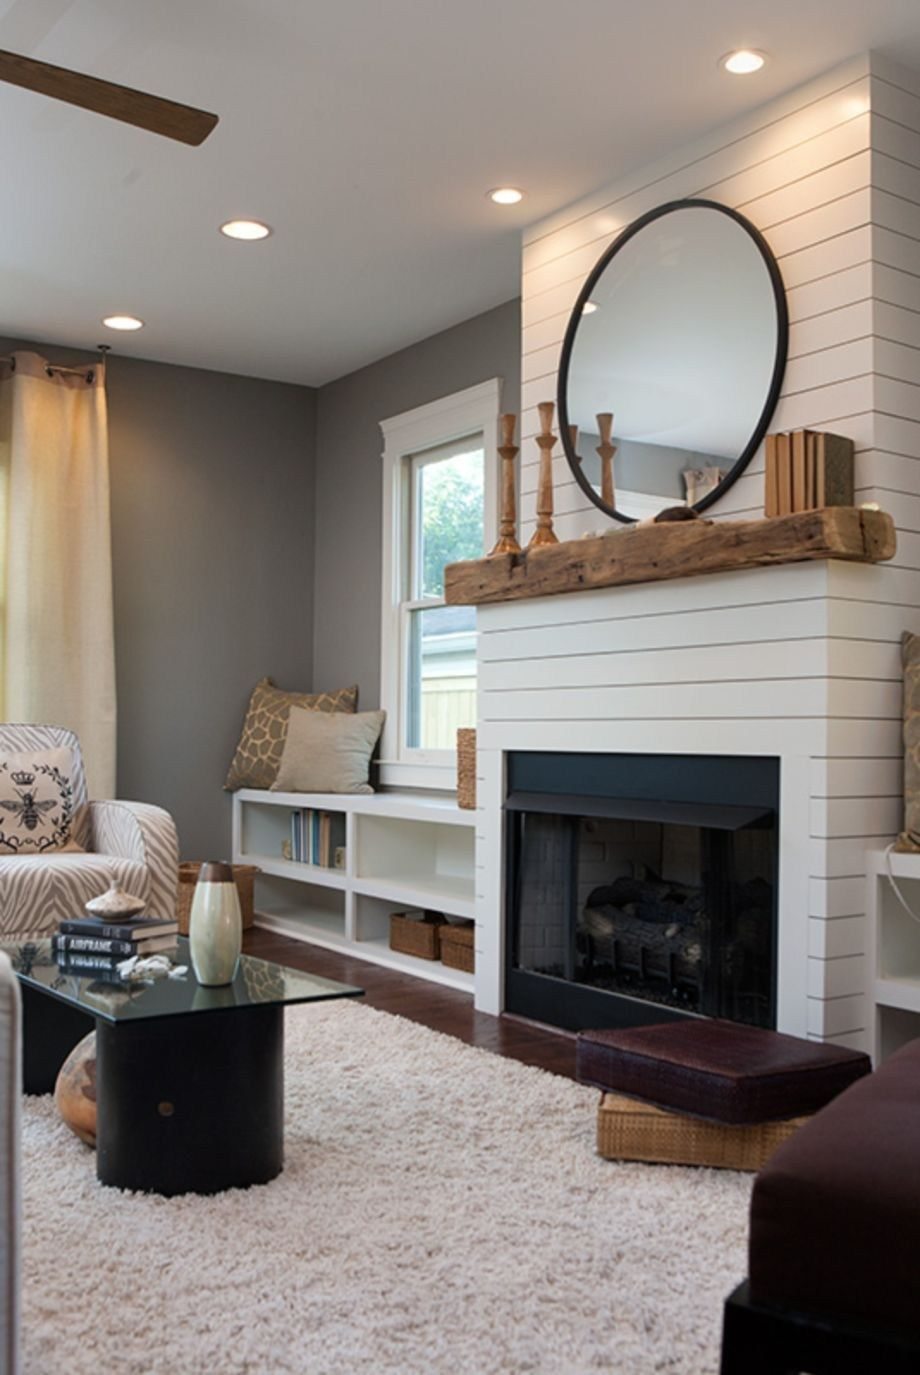 Outstanding shiplap fireplace wall decor ideas 5  Farm house